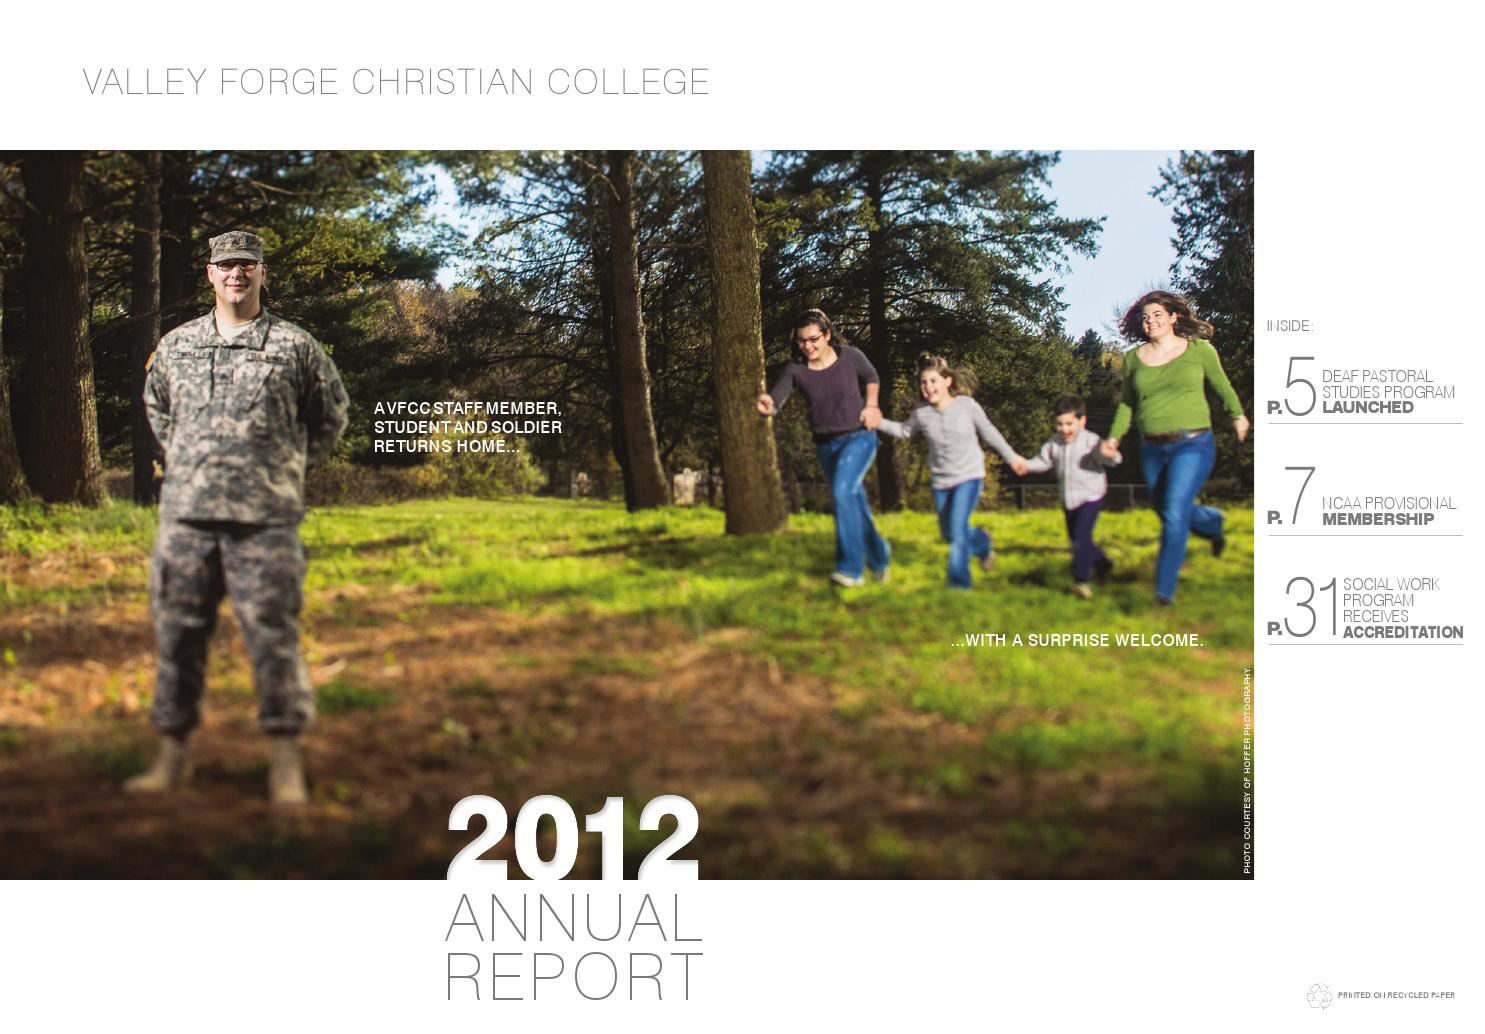 Valley Forge Christian College >> VFCC Annual Report 2012 by University of Valley Forge - Issuu